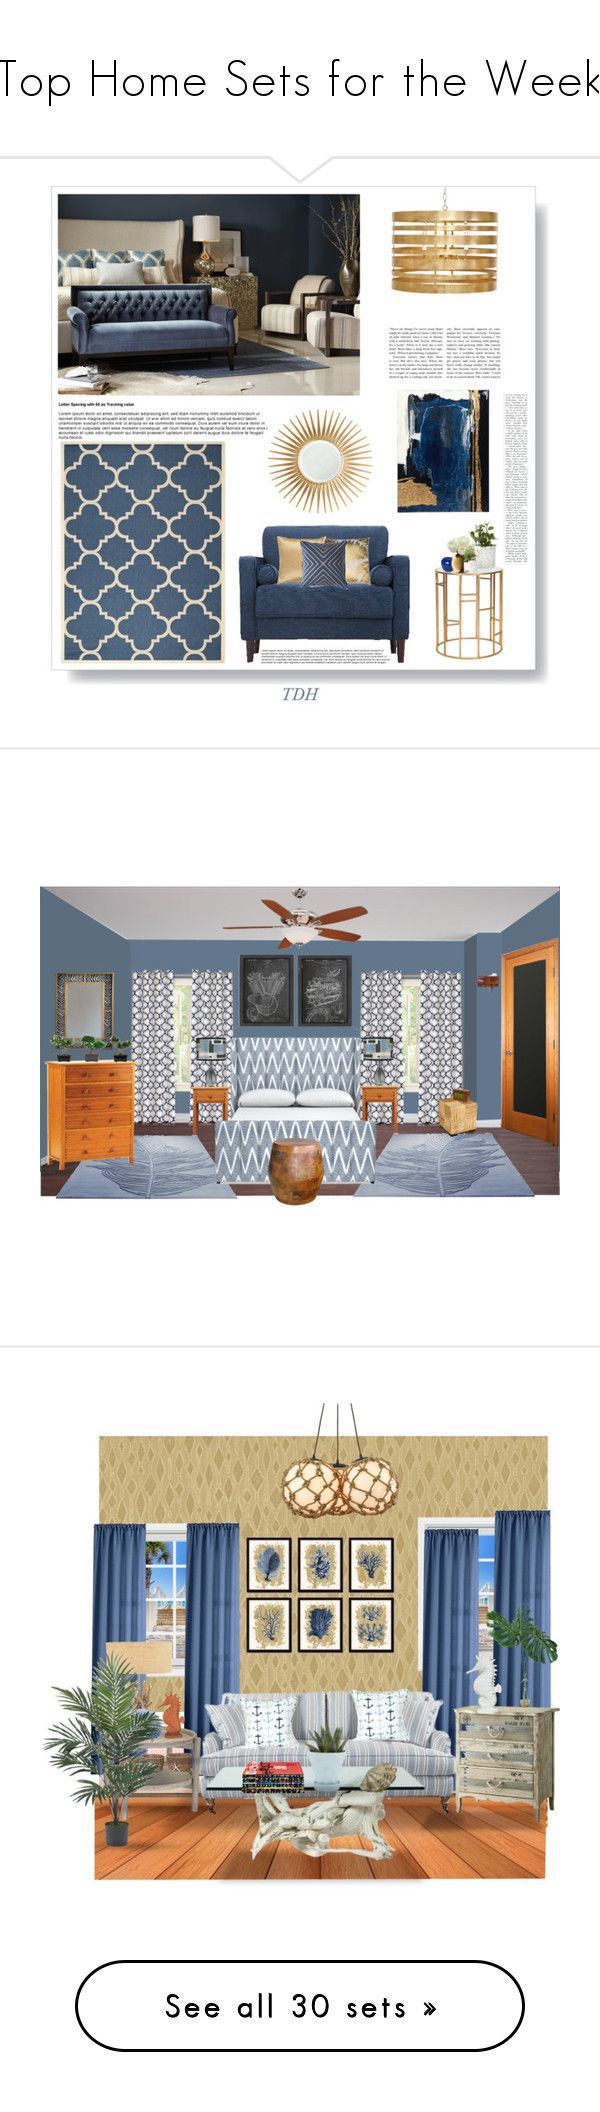 """""""Top Home Sets for the Week"""" by polyvore ❤ liked on Polyvore featuring interior, interiors, interior design, home, home decor, interior decorating, Safavieh, Bitossi, LSA International and Barclay Butera"""